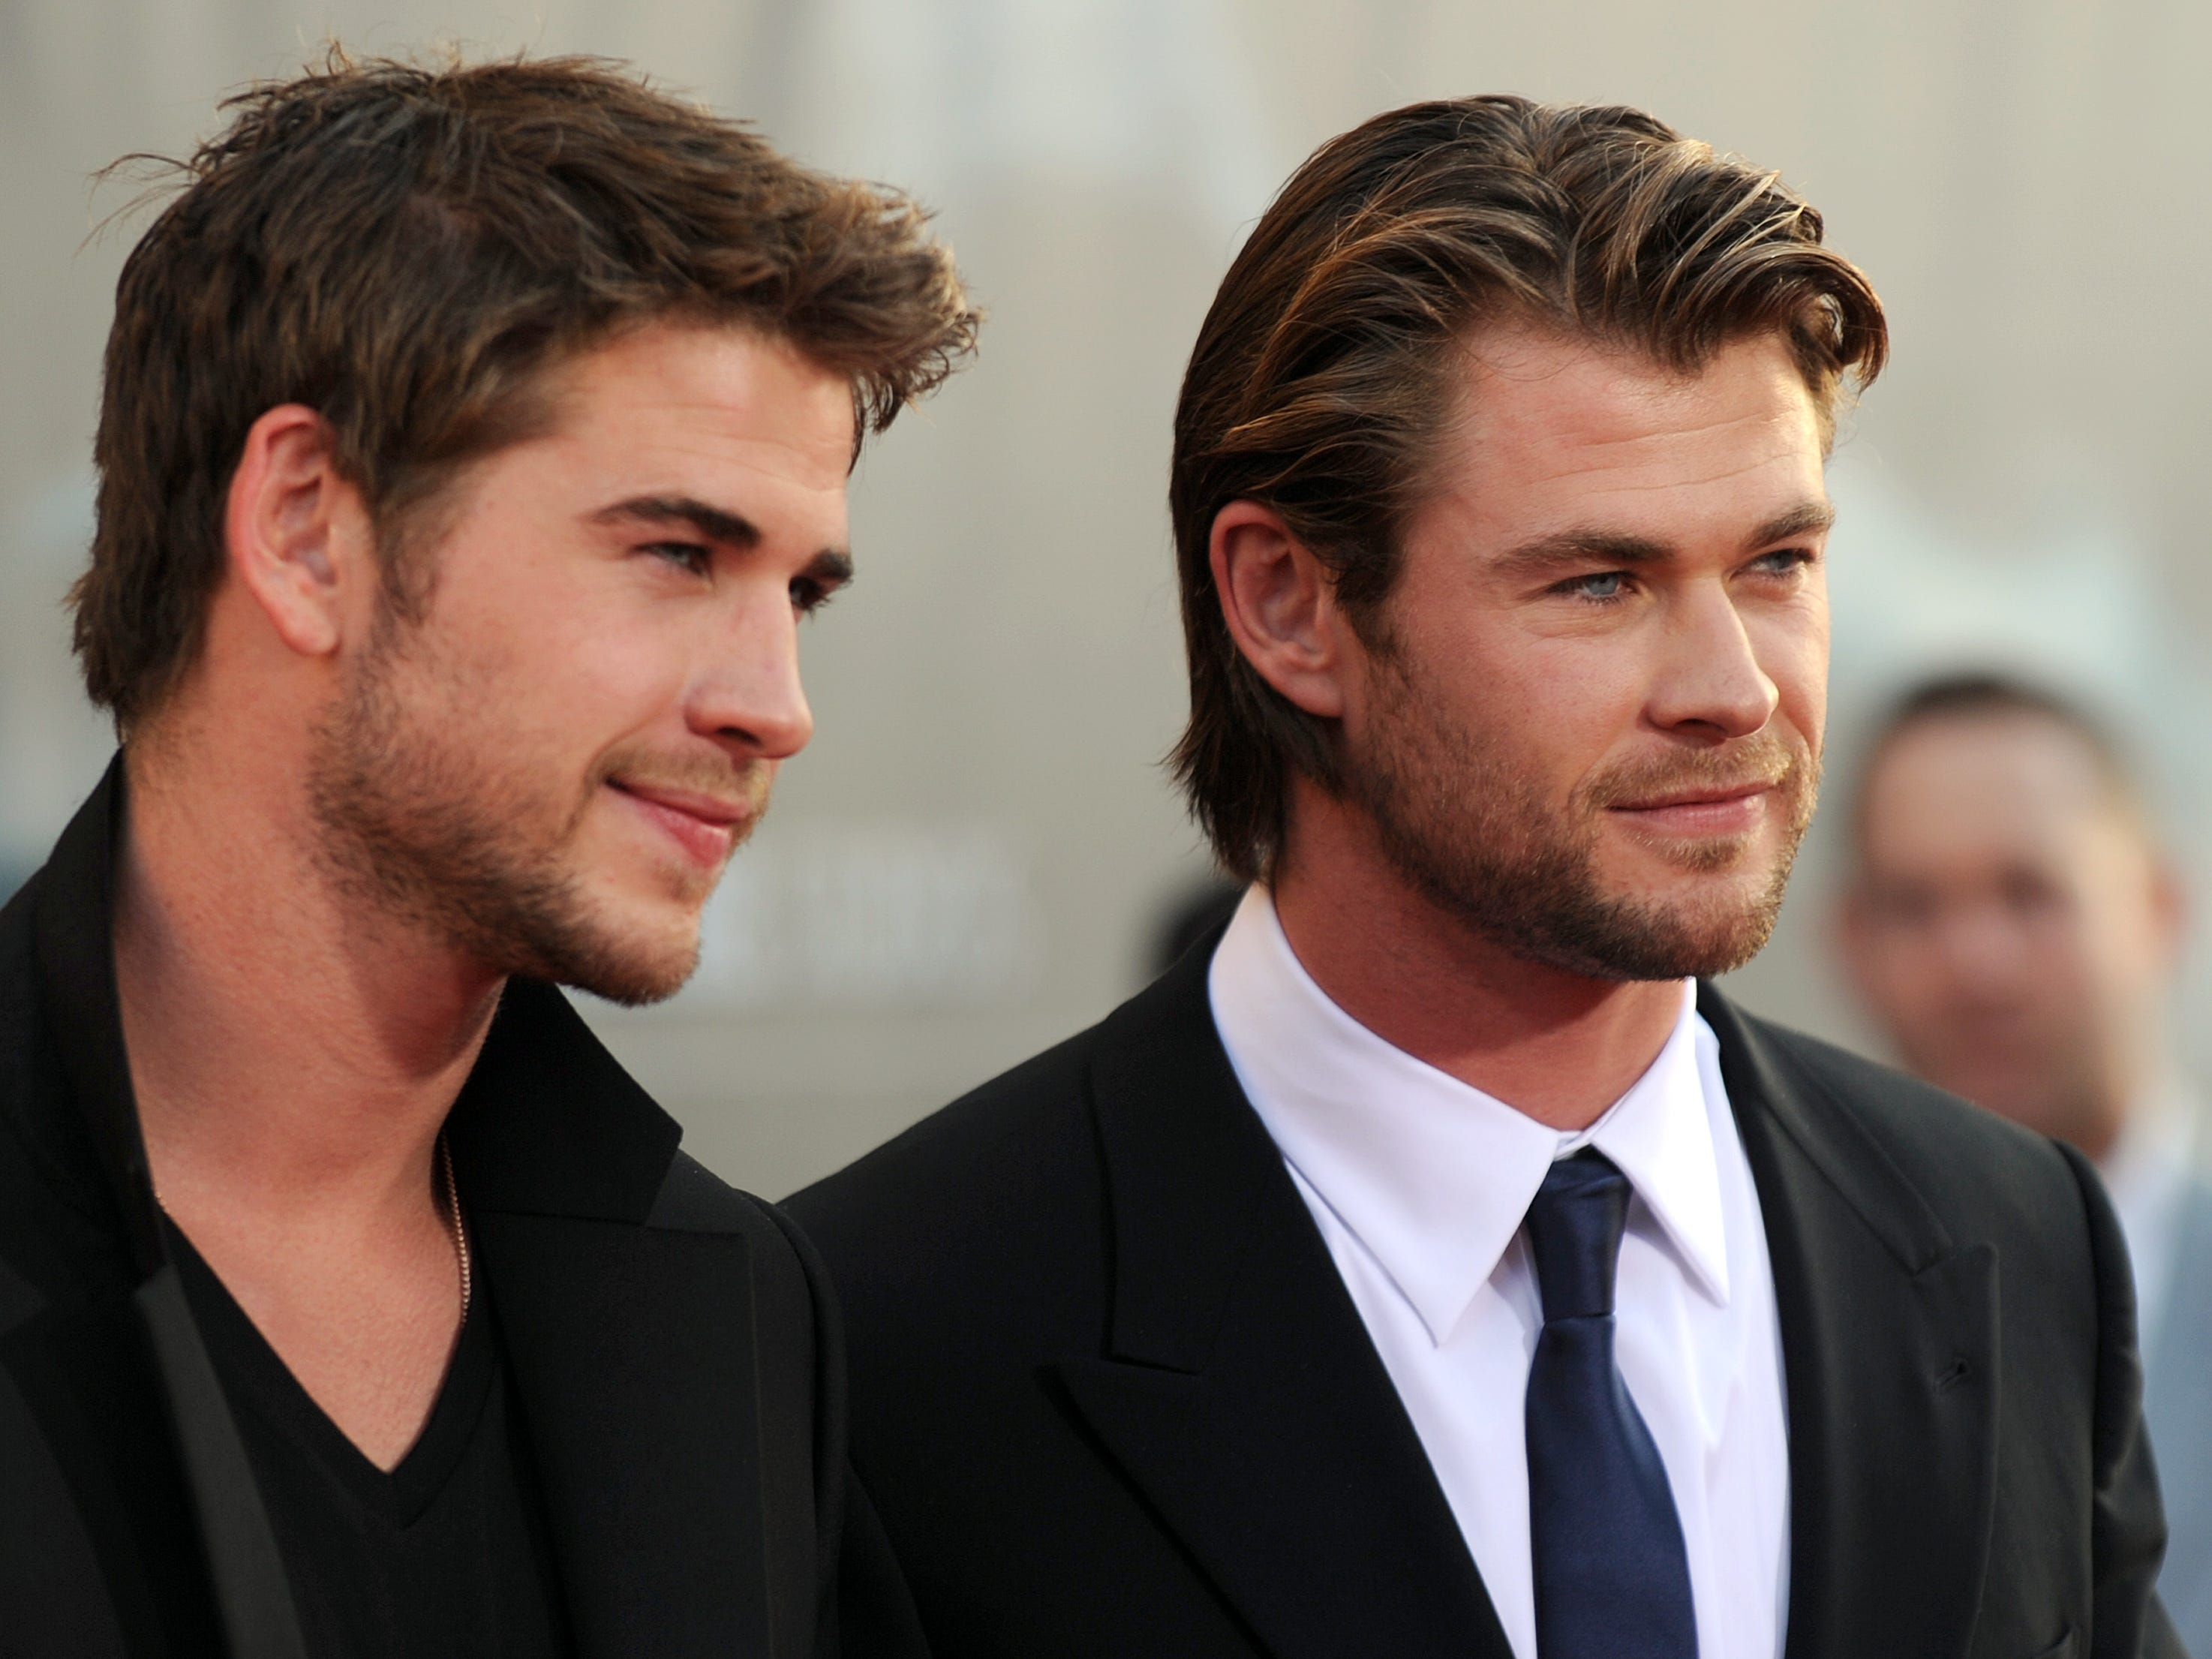 ORG XMIT: 112587881 Actors Luke Hemsworth and his brother Chris Hemsworth (R) arrive at the premiere of Thor in Hollywood, California on May 2, 2011. AFP PHOTO / GABRIEL BOUYS (Photo credit should read GABRIEL BOUYS/AFP/Getty Images) ORIG FILE ID: US-CINEMA-THOR